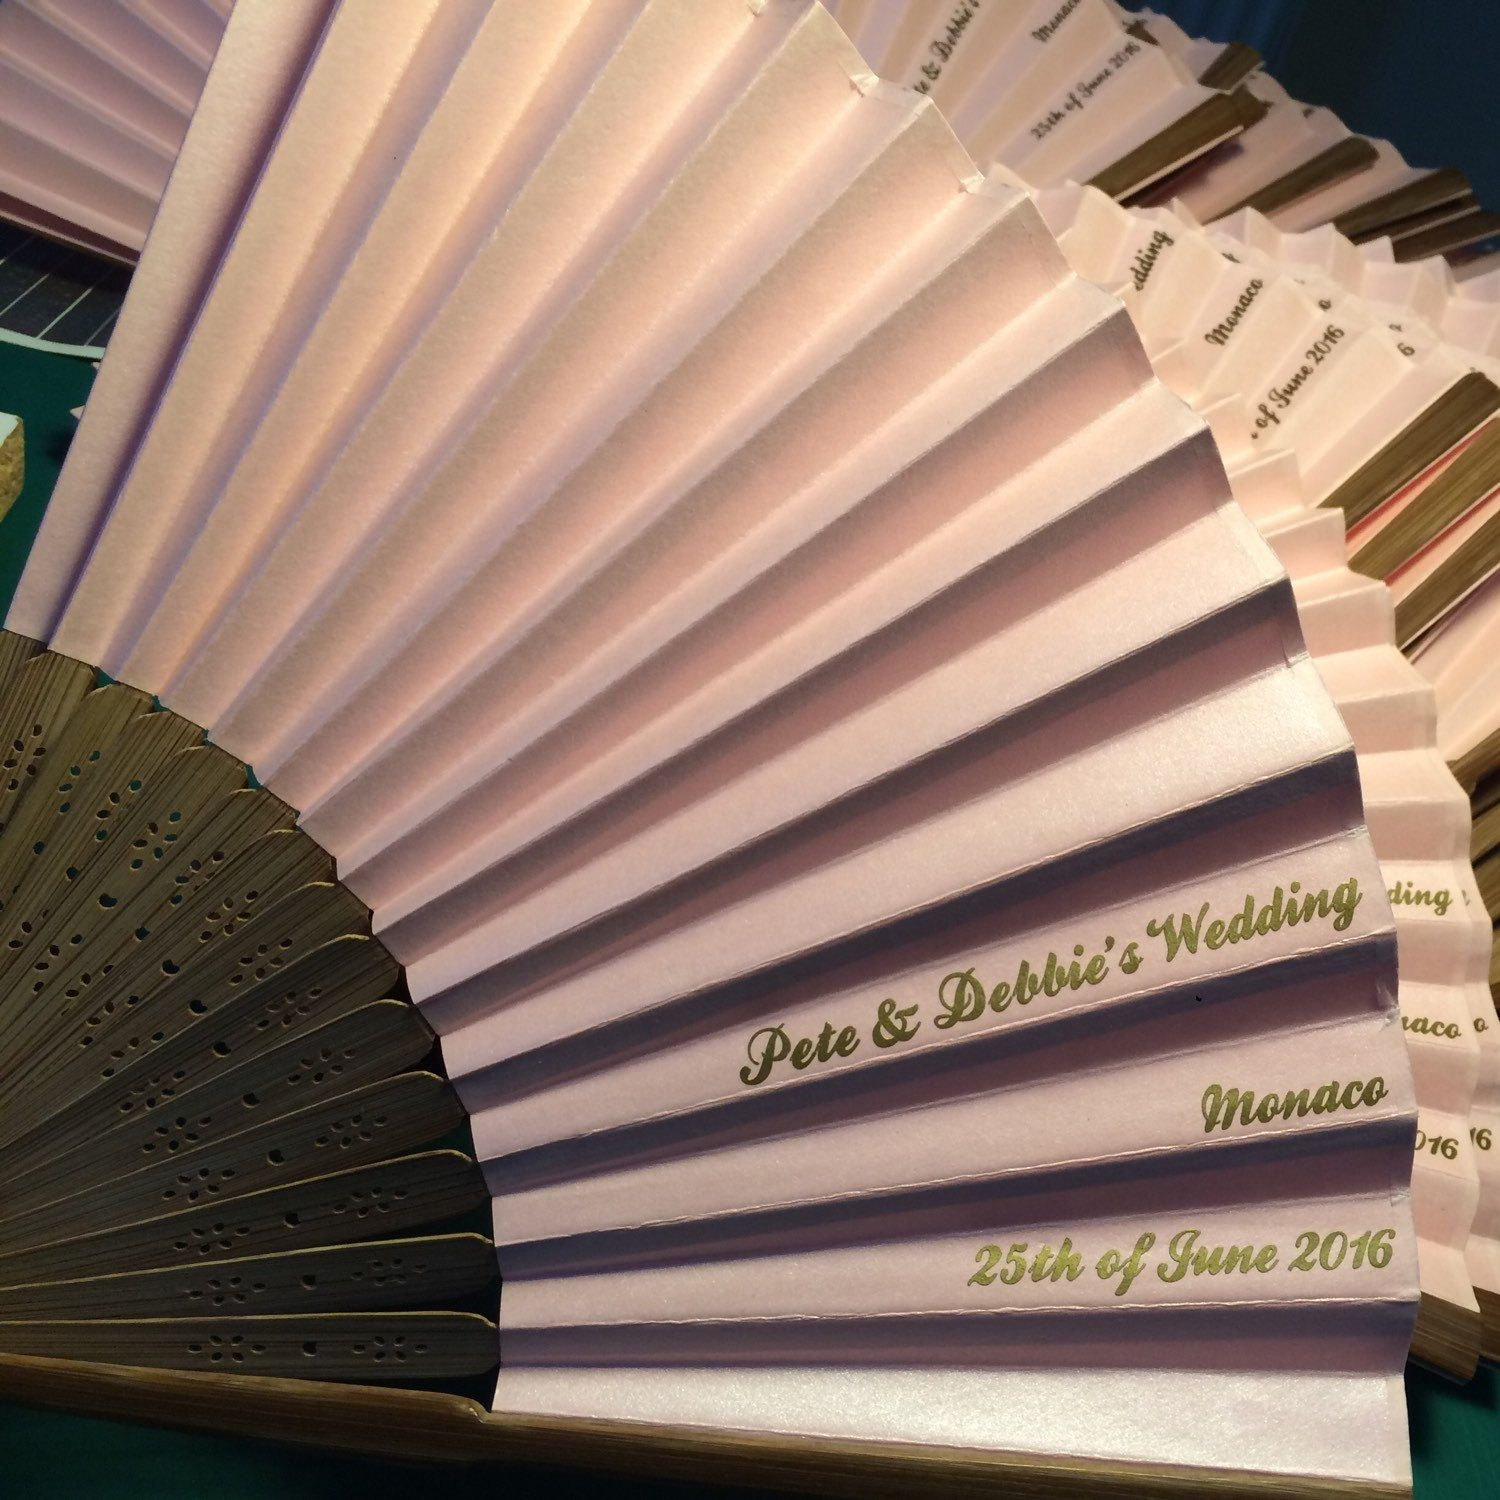 Personalised Wedding Fans 5 Fan Min Order Layout Shown Ships Worldwide Contact For Shipping Quote Not Free